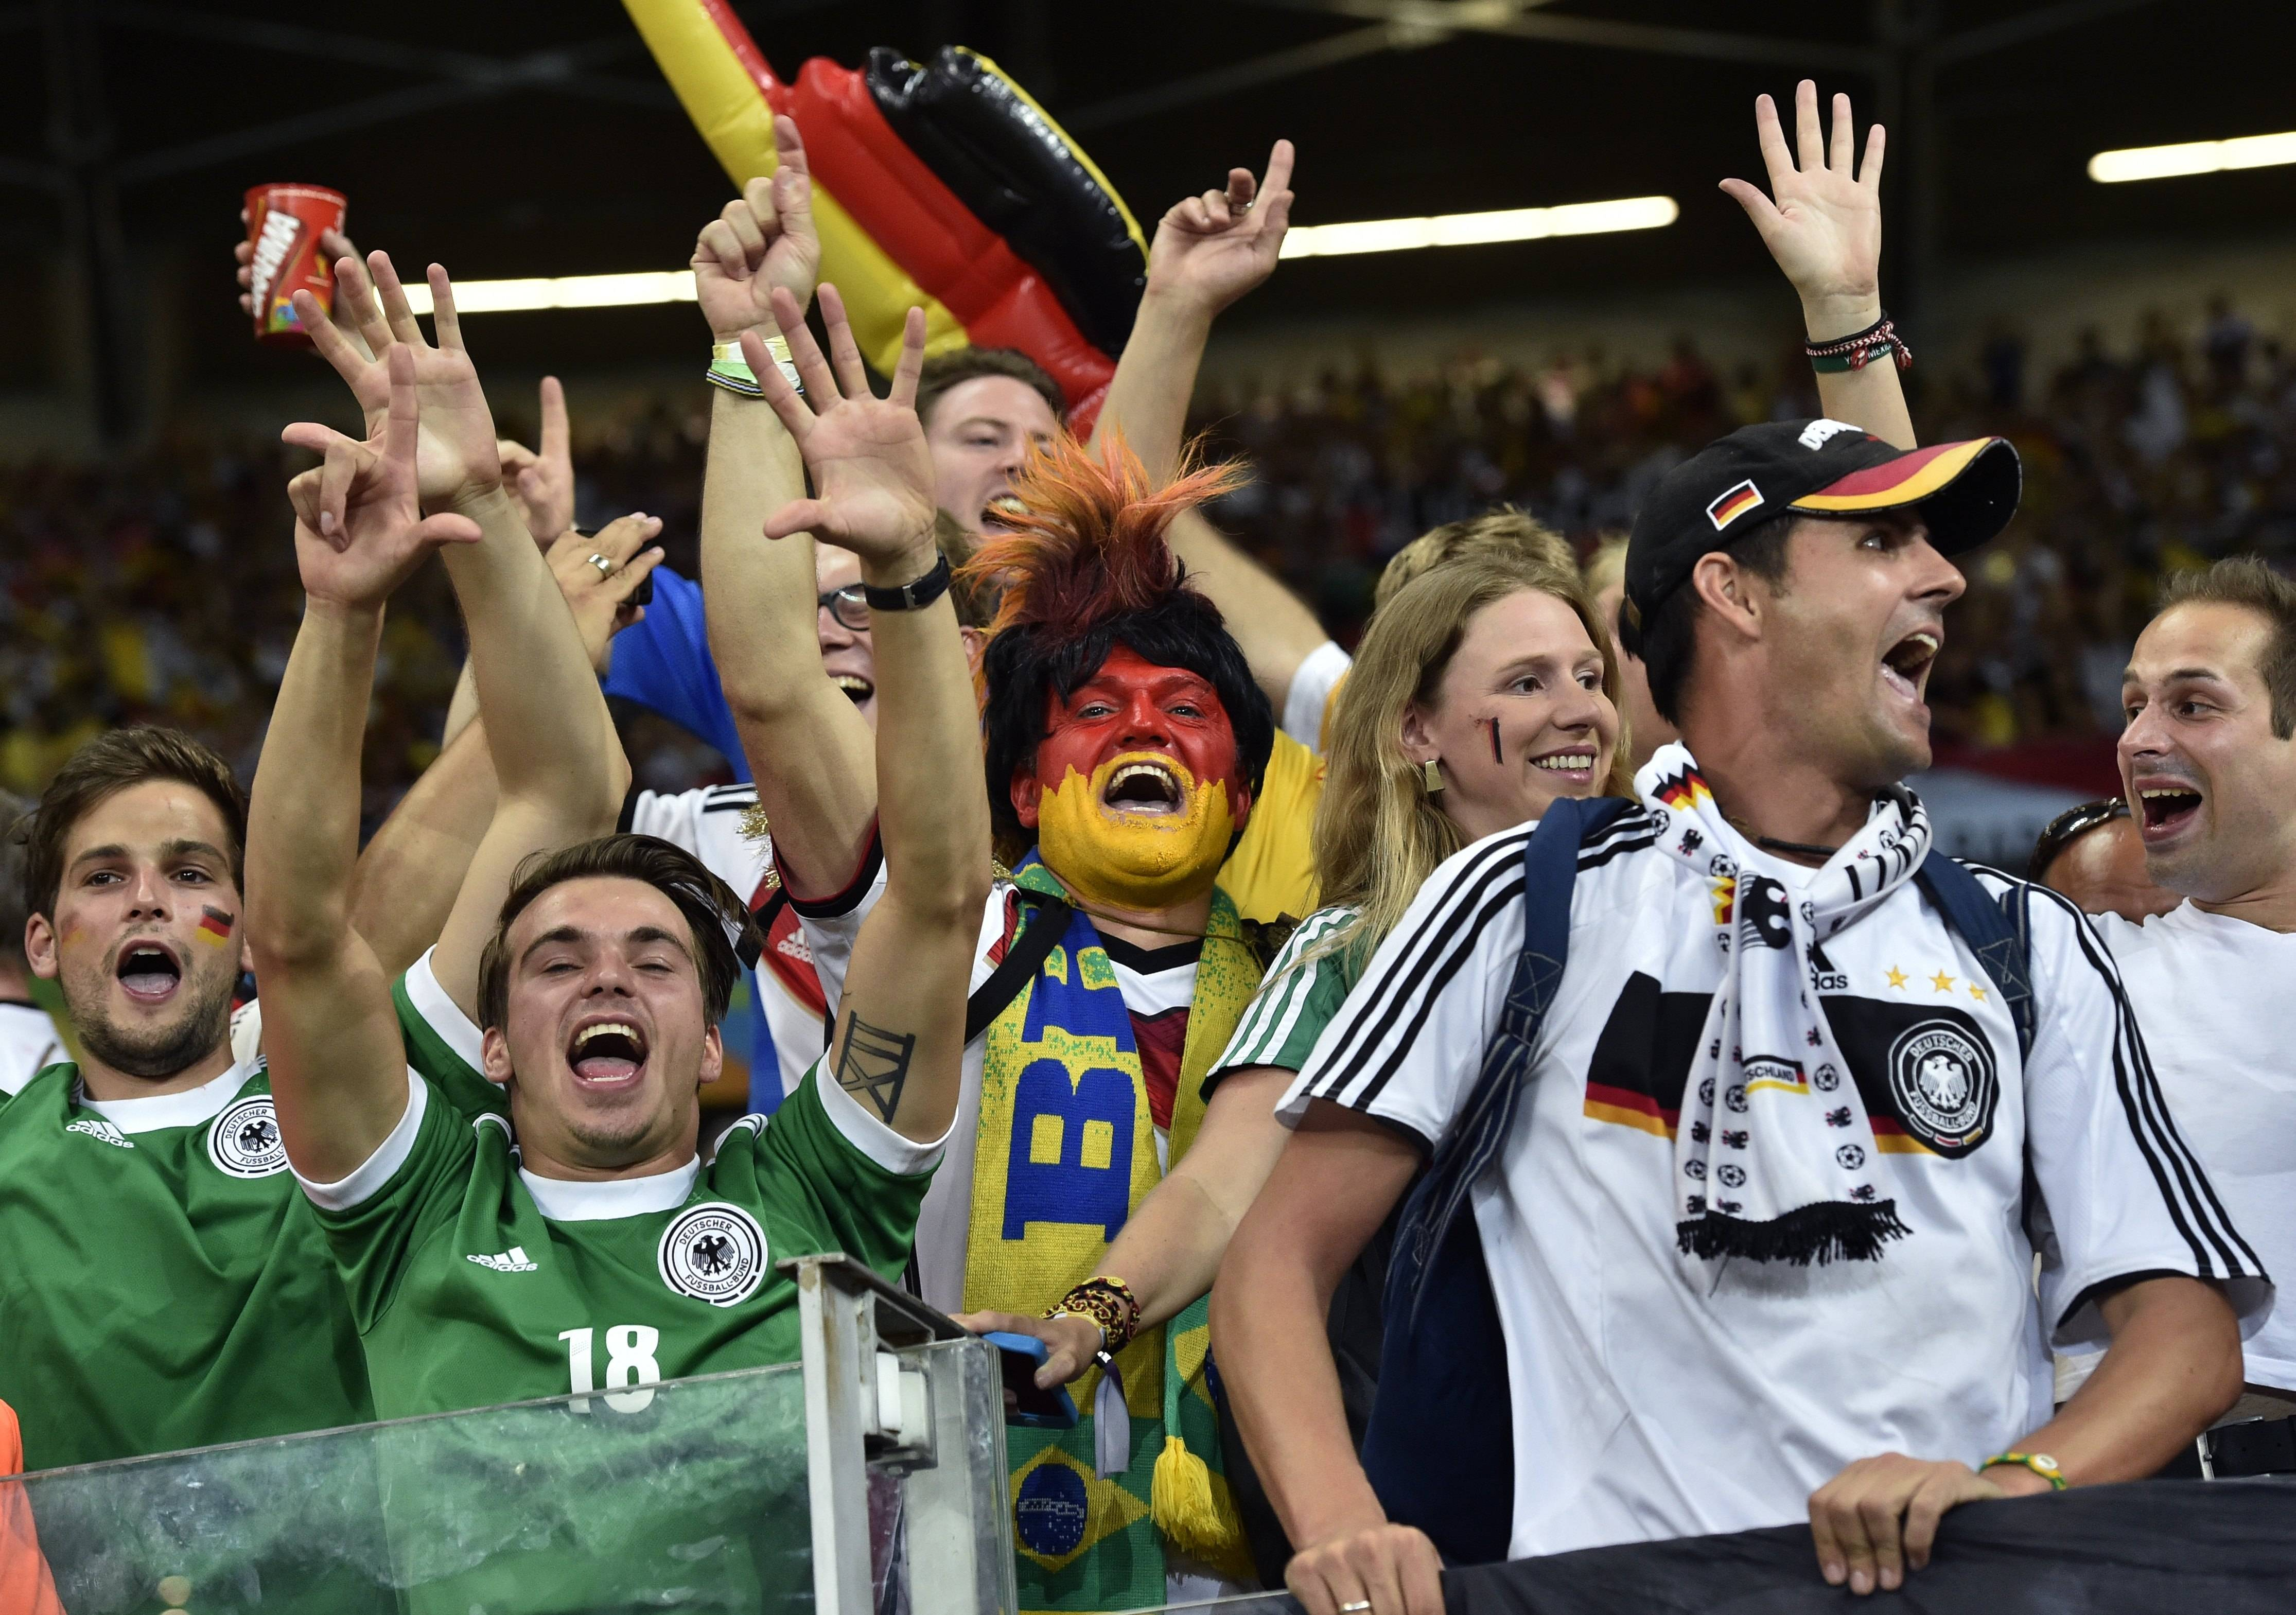 German supporters celebrate after the World Cup semifinal soccer match between Brazil and Germany at the Mineirao Stadium in Belo Horizonte, Brazil, Tuesday, July 8, 2014. Germany won the match 7-1.